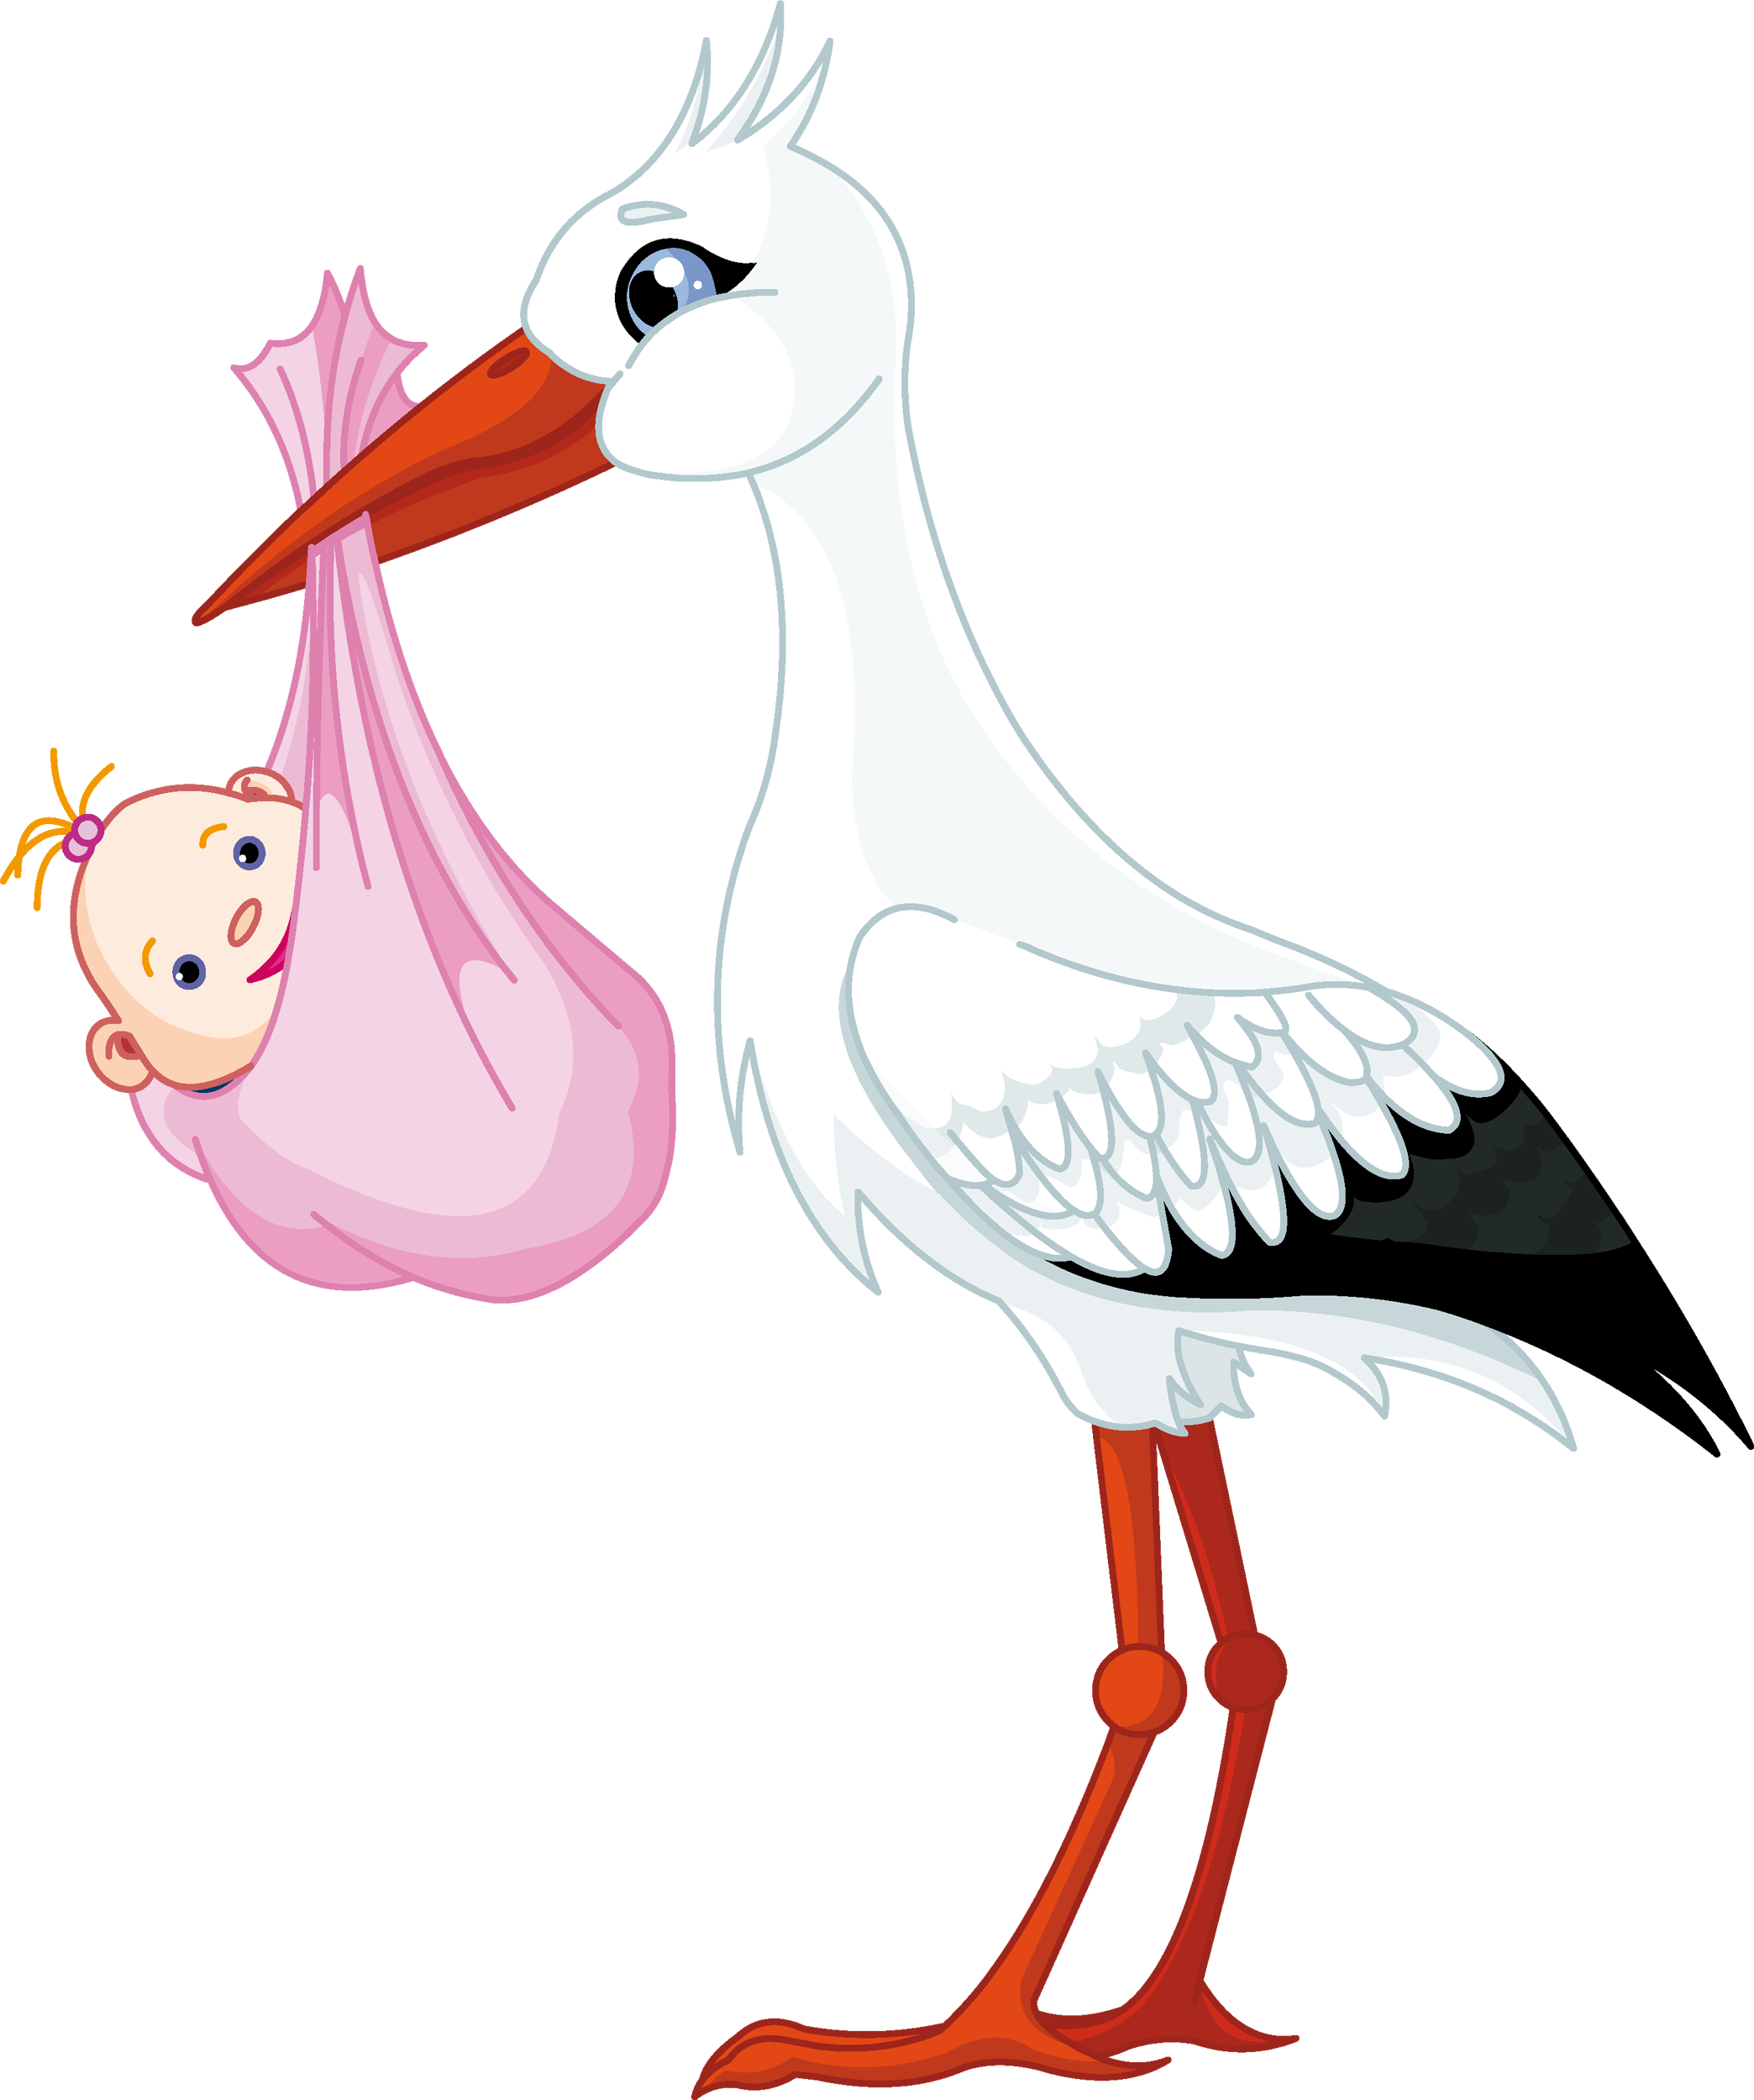 Pink stork with brown baby clipart banner black and white Pin by Carol Raj on cliparts | Baby stork, Baby shawer, Baby ... banner black and white